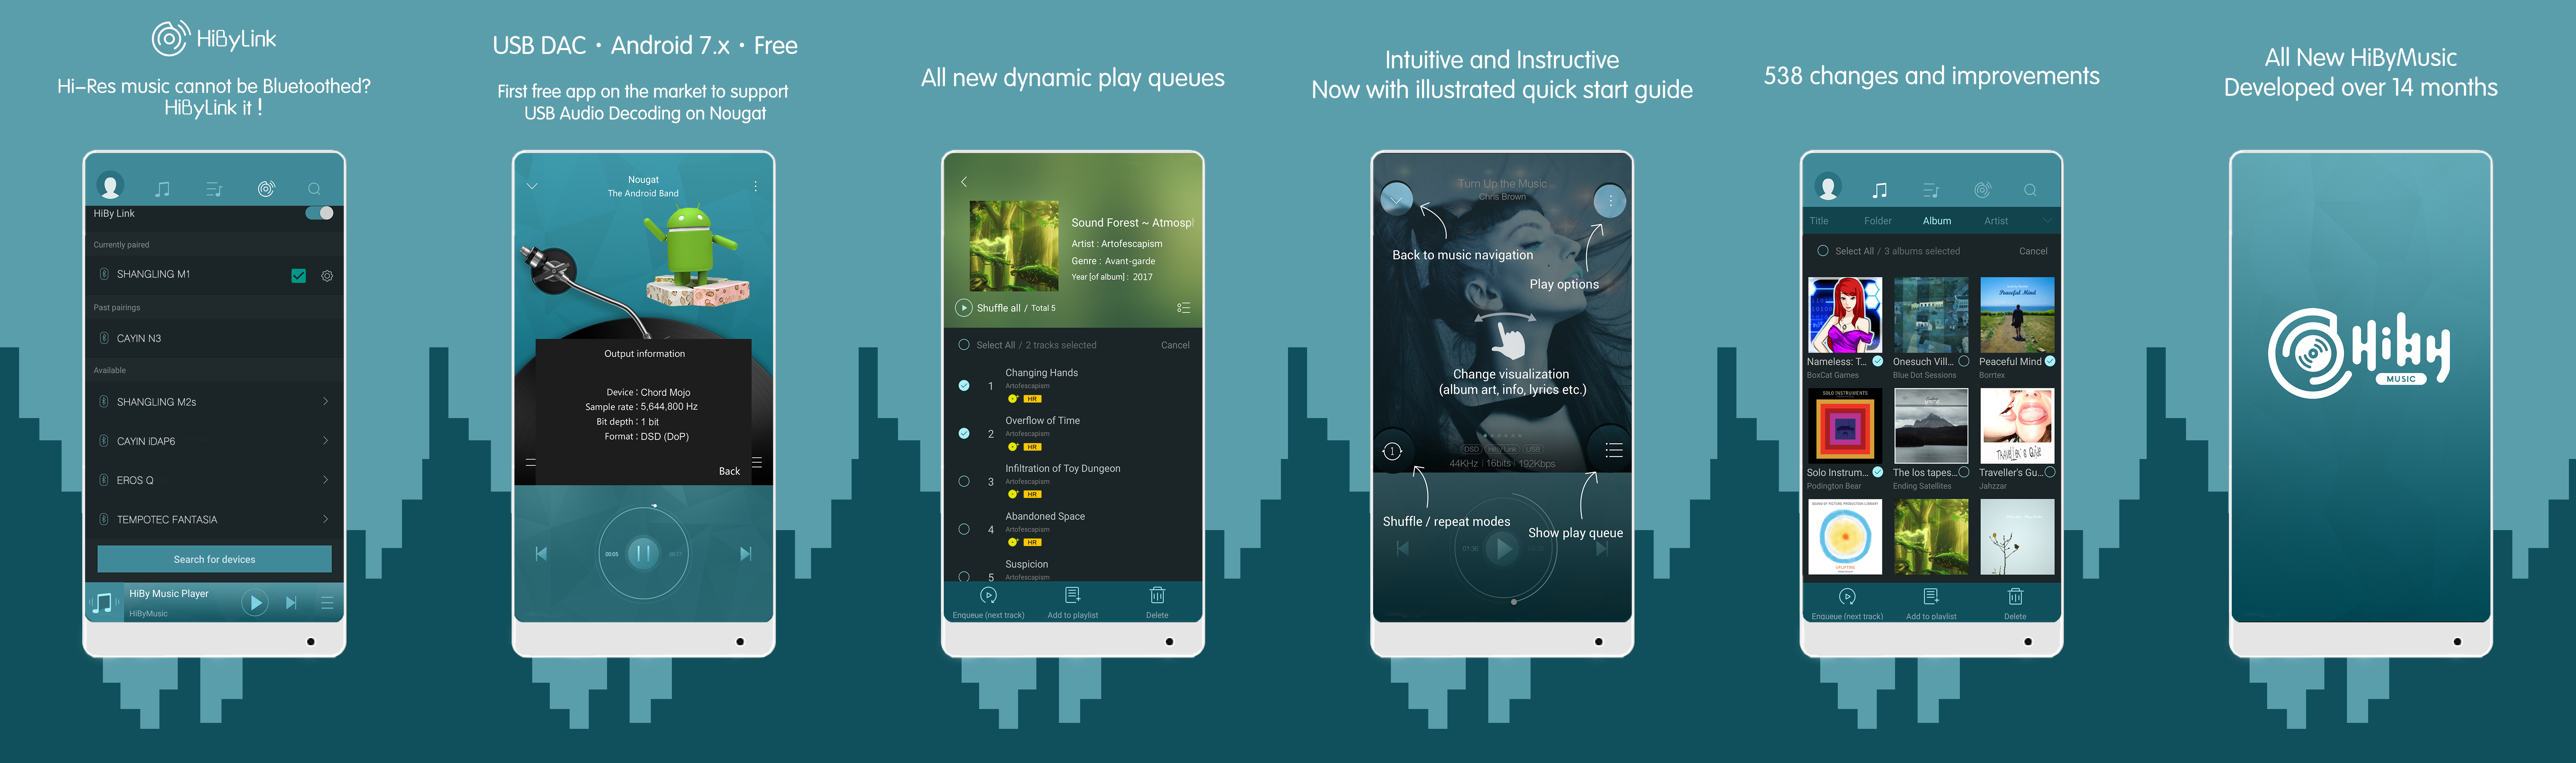 HibyMusic Android and iOS Music Player - Bit-perfect USB